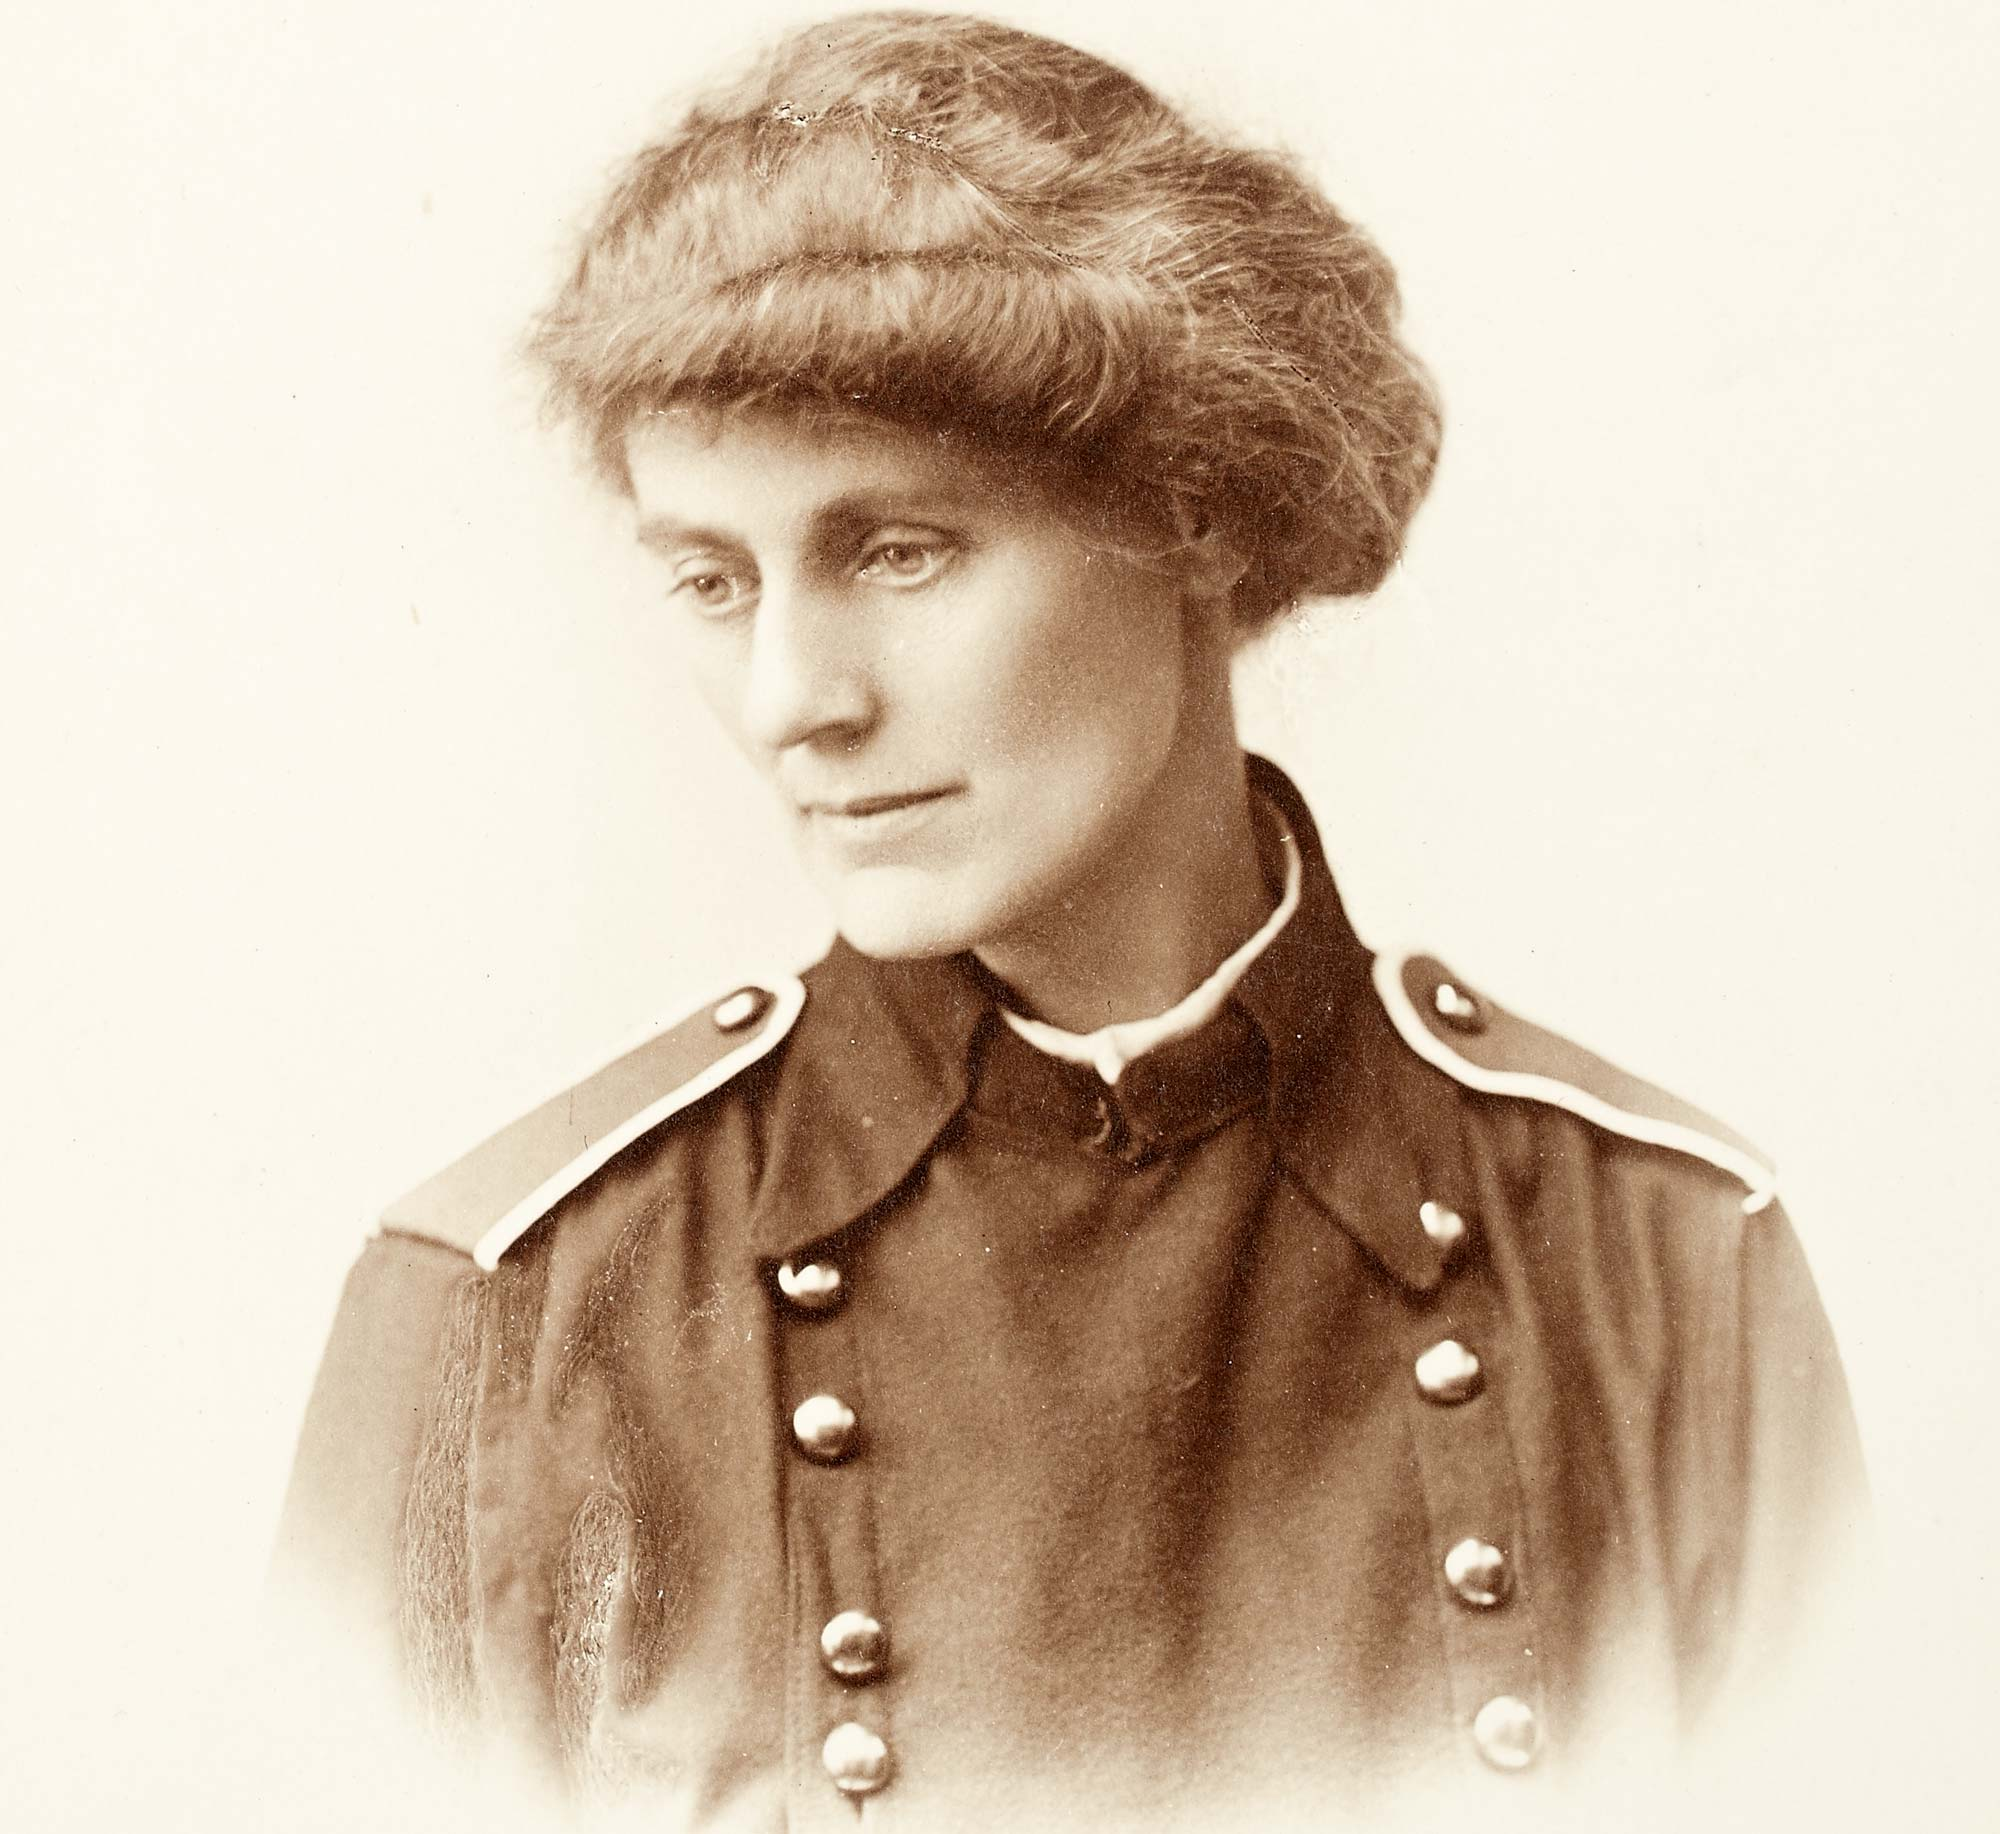 Better treatment for Countess Markievicz demanded